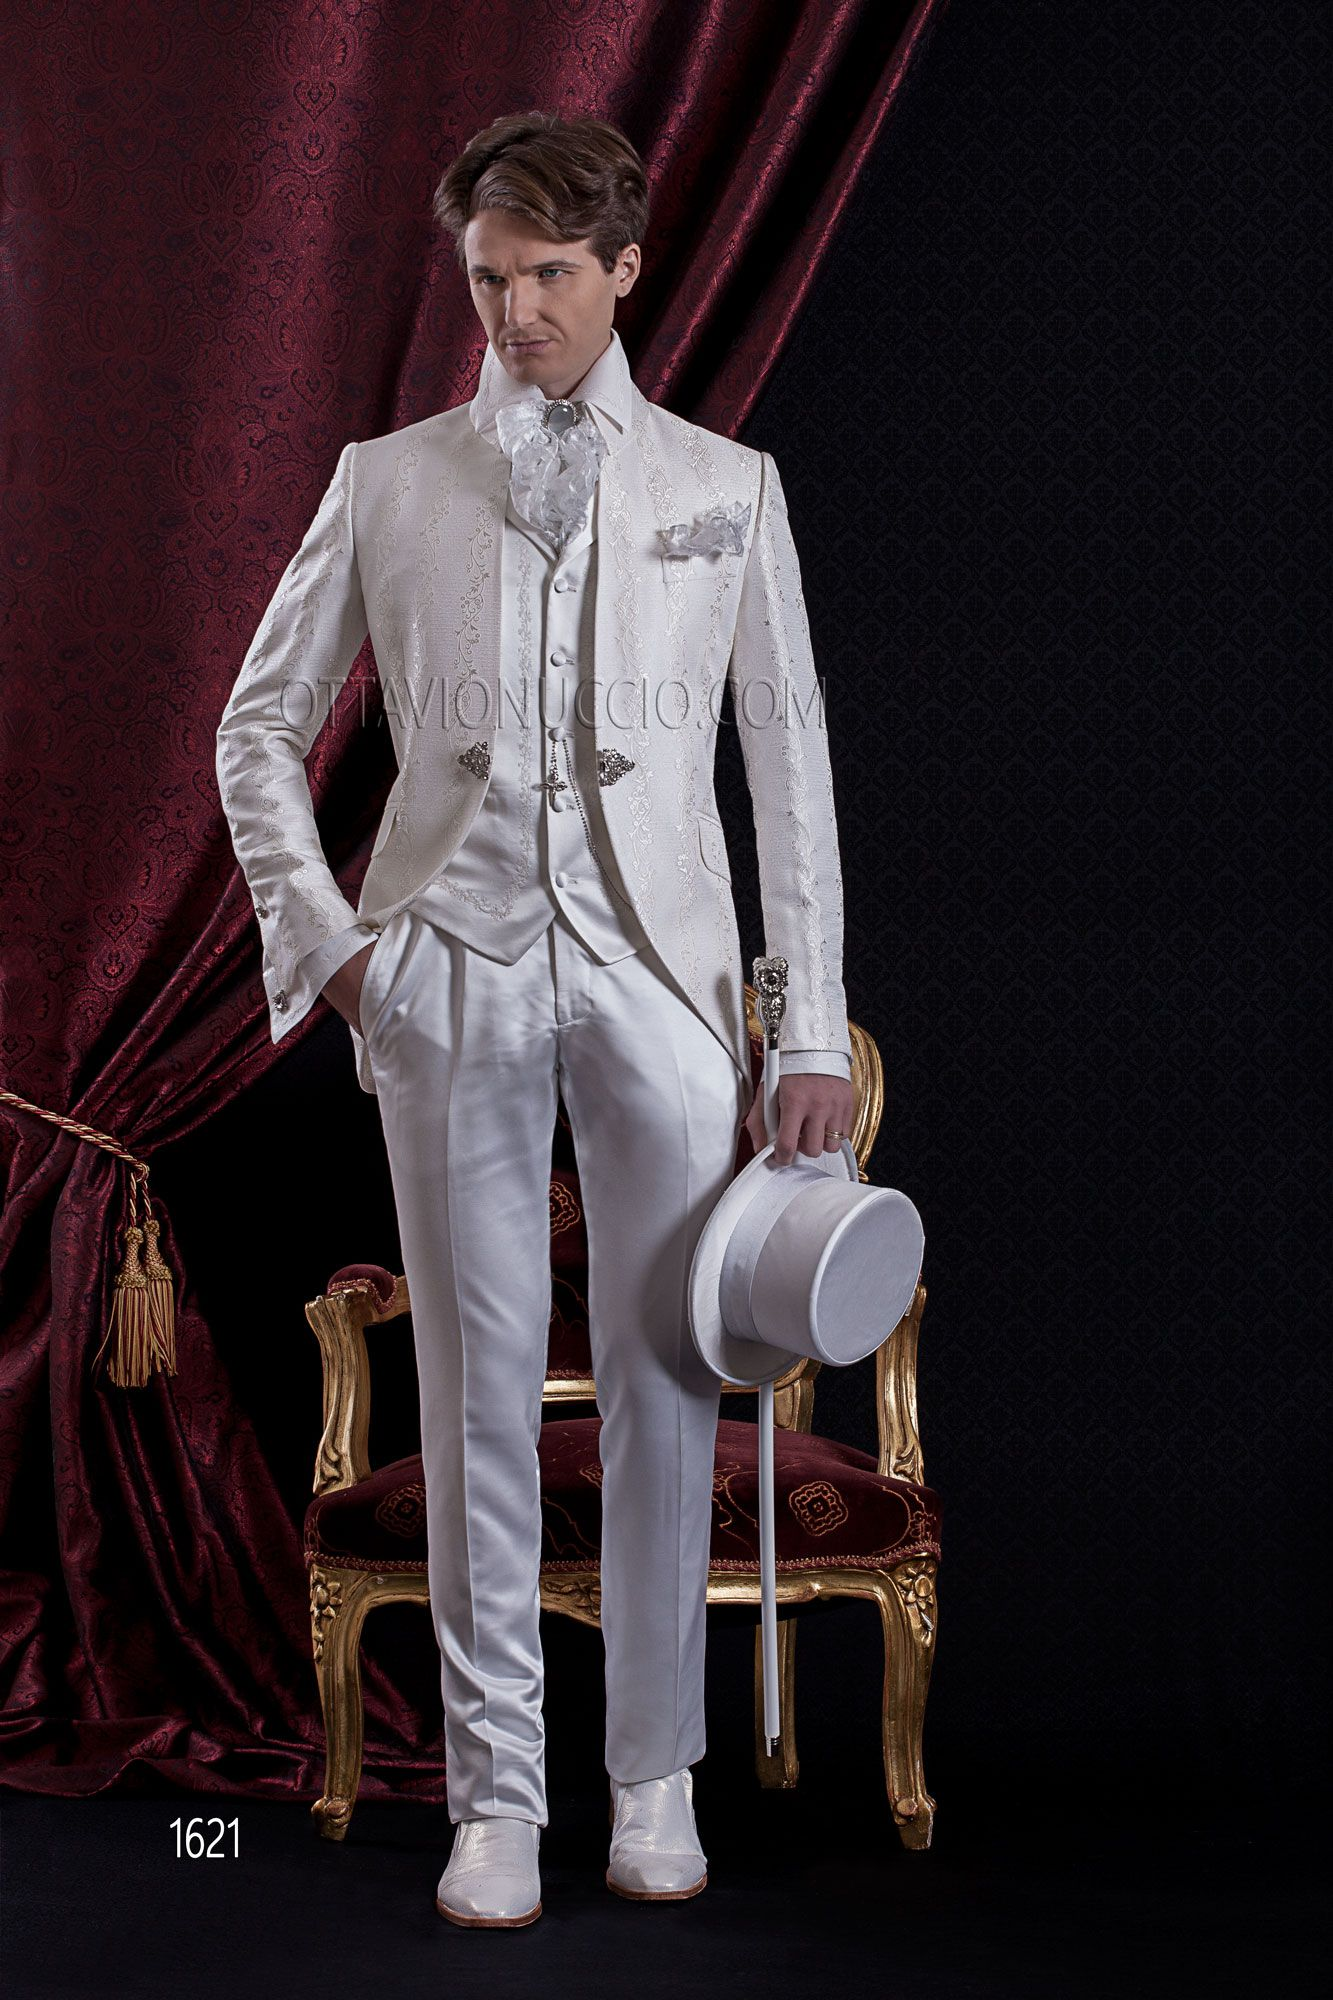 Baroque wedding suit for man in white brocade ottavionuccio